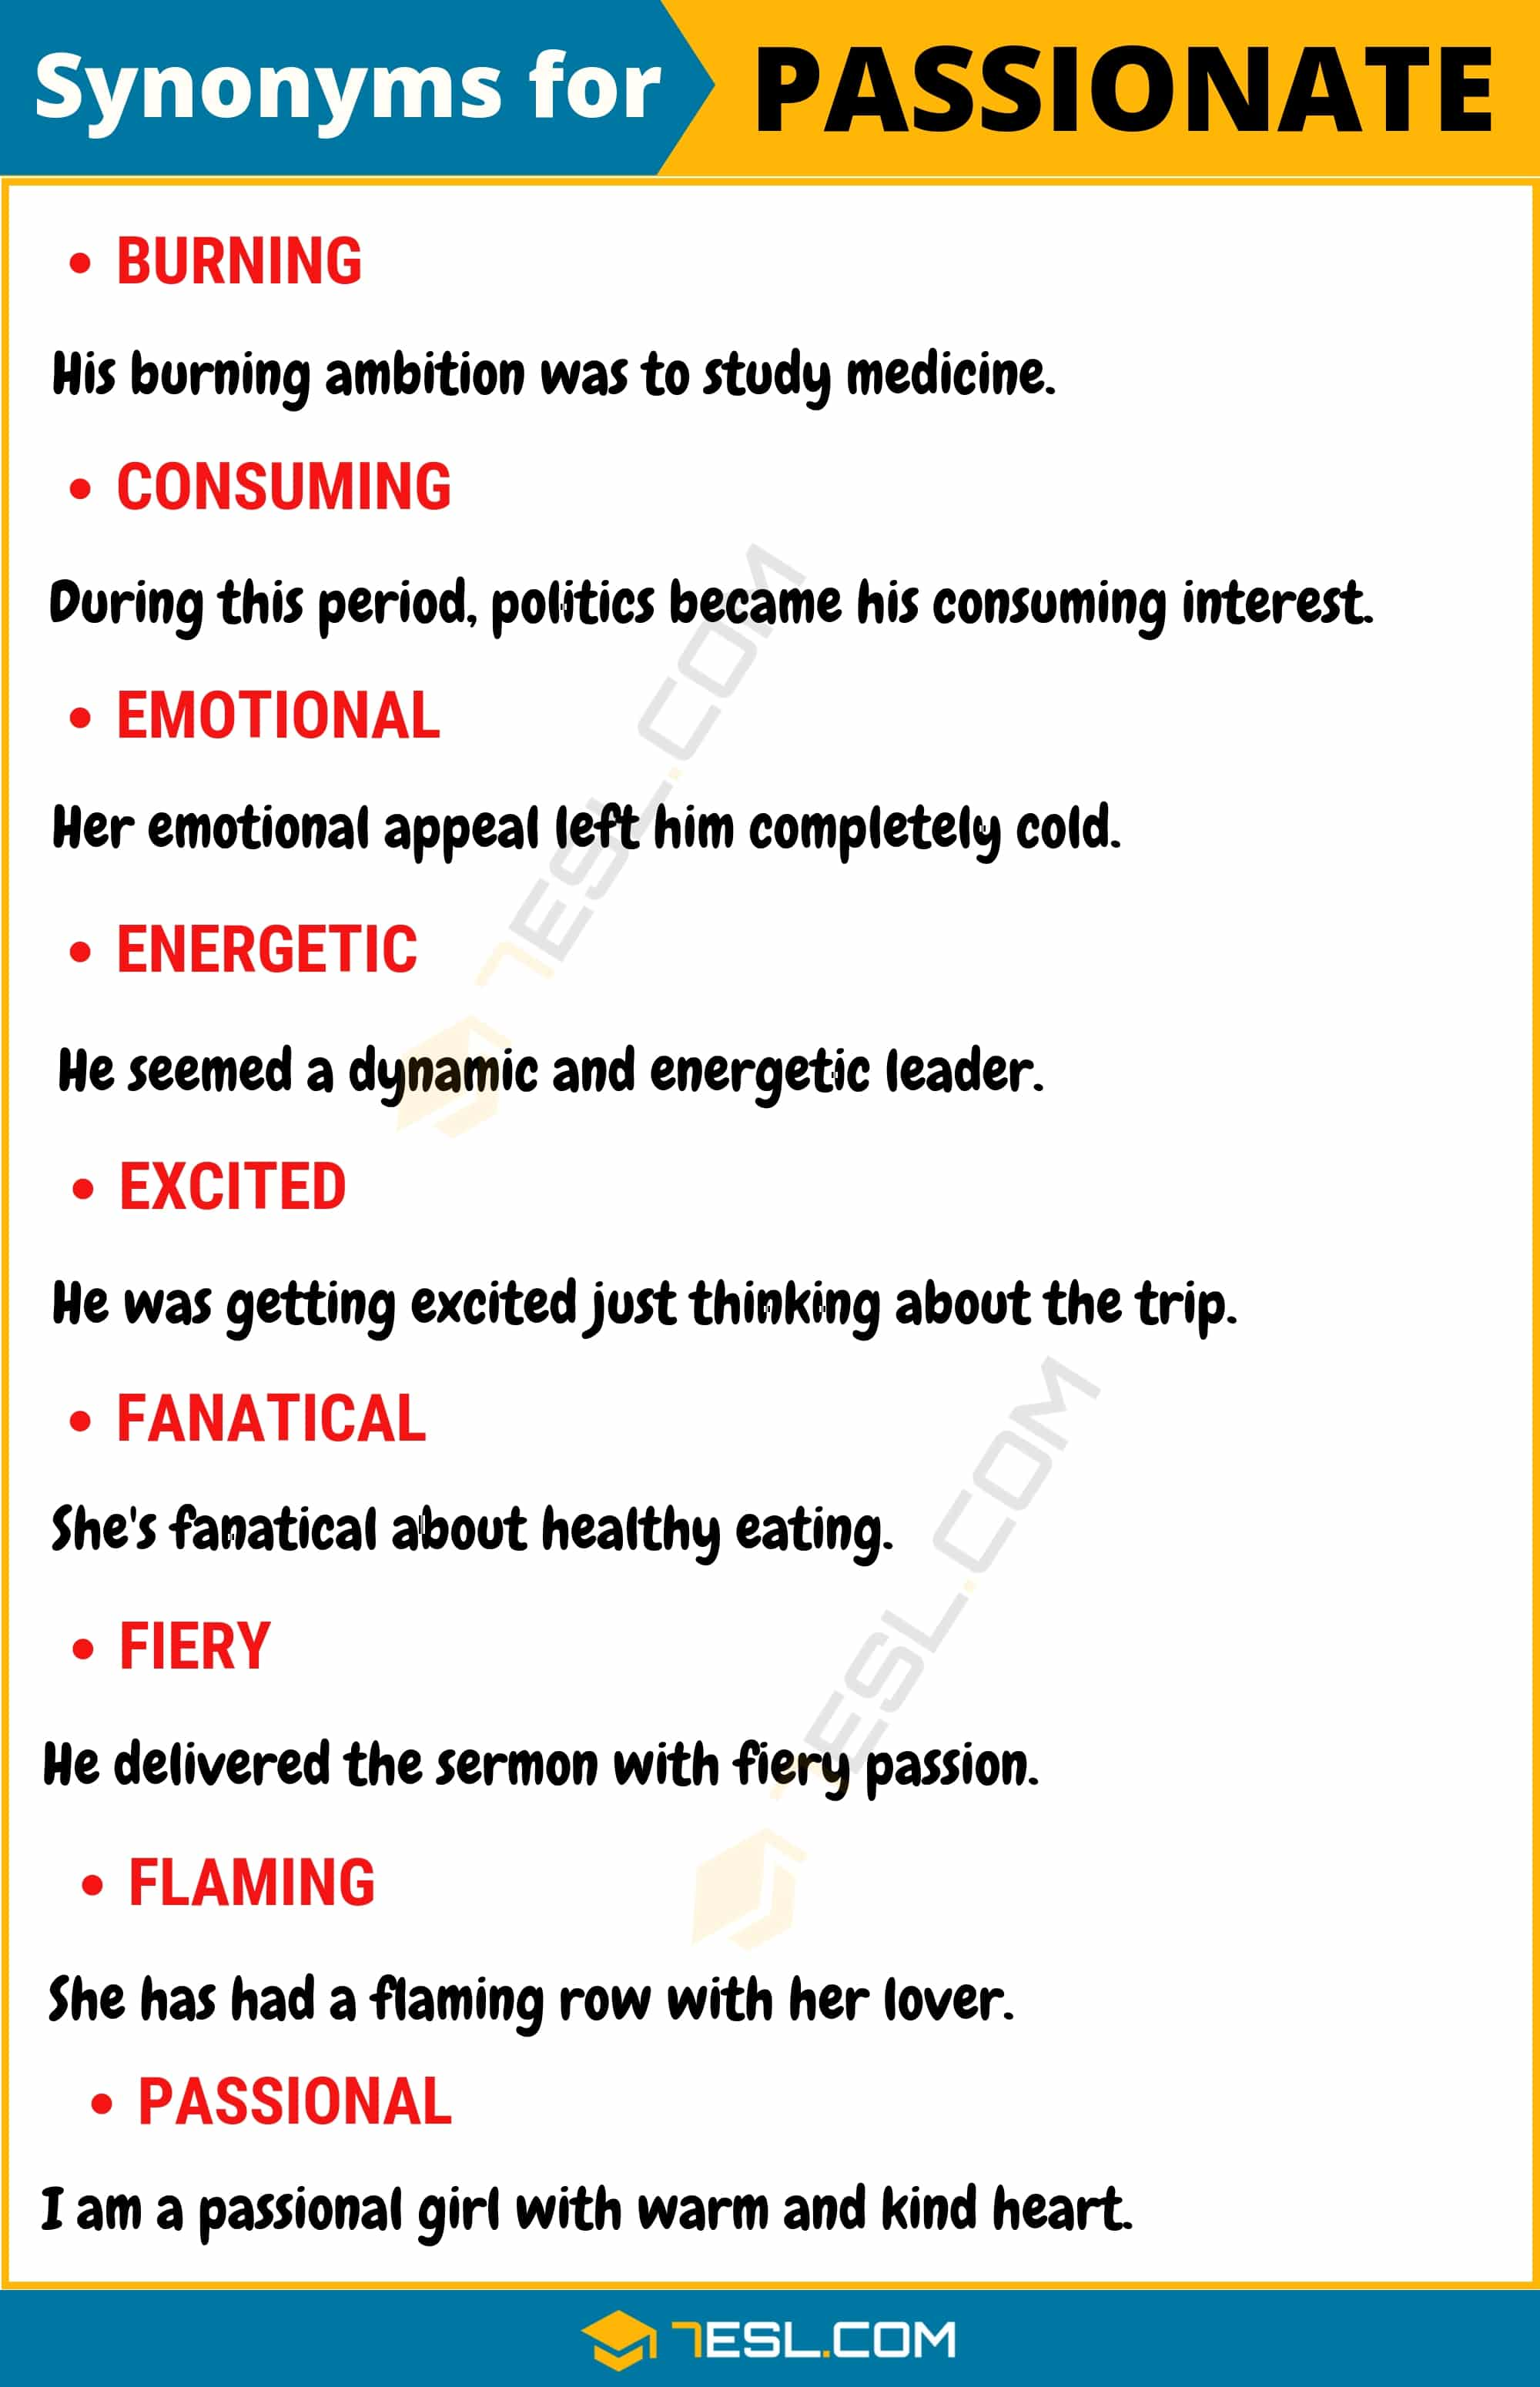 PASSIONATE Synonym: List of 15 Synonyms for Passionate with Examples